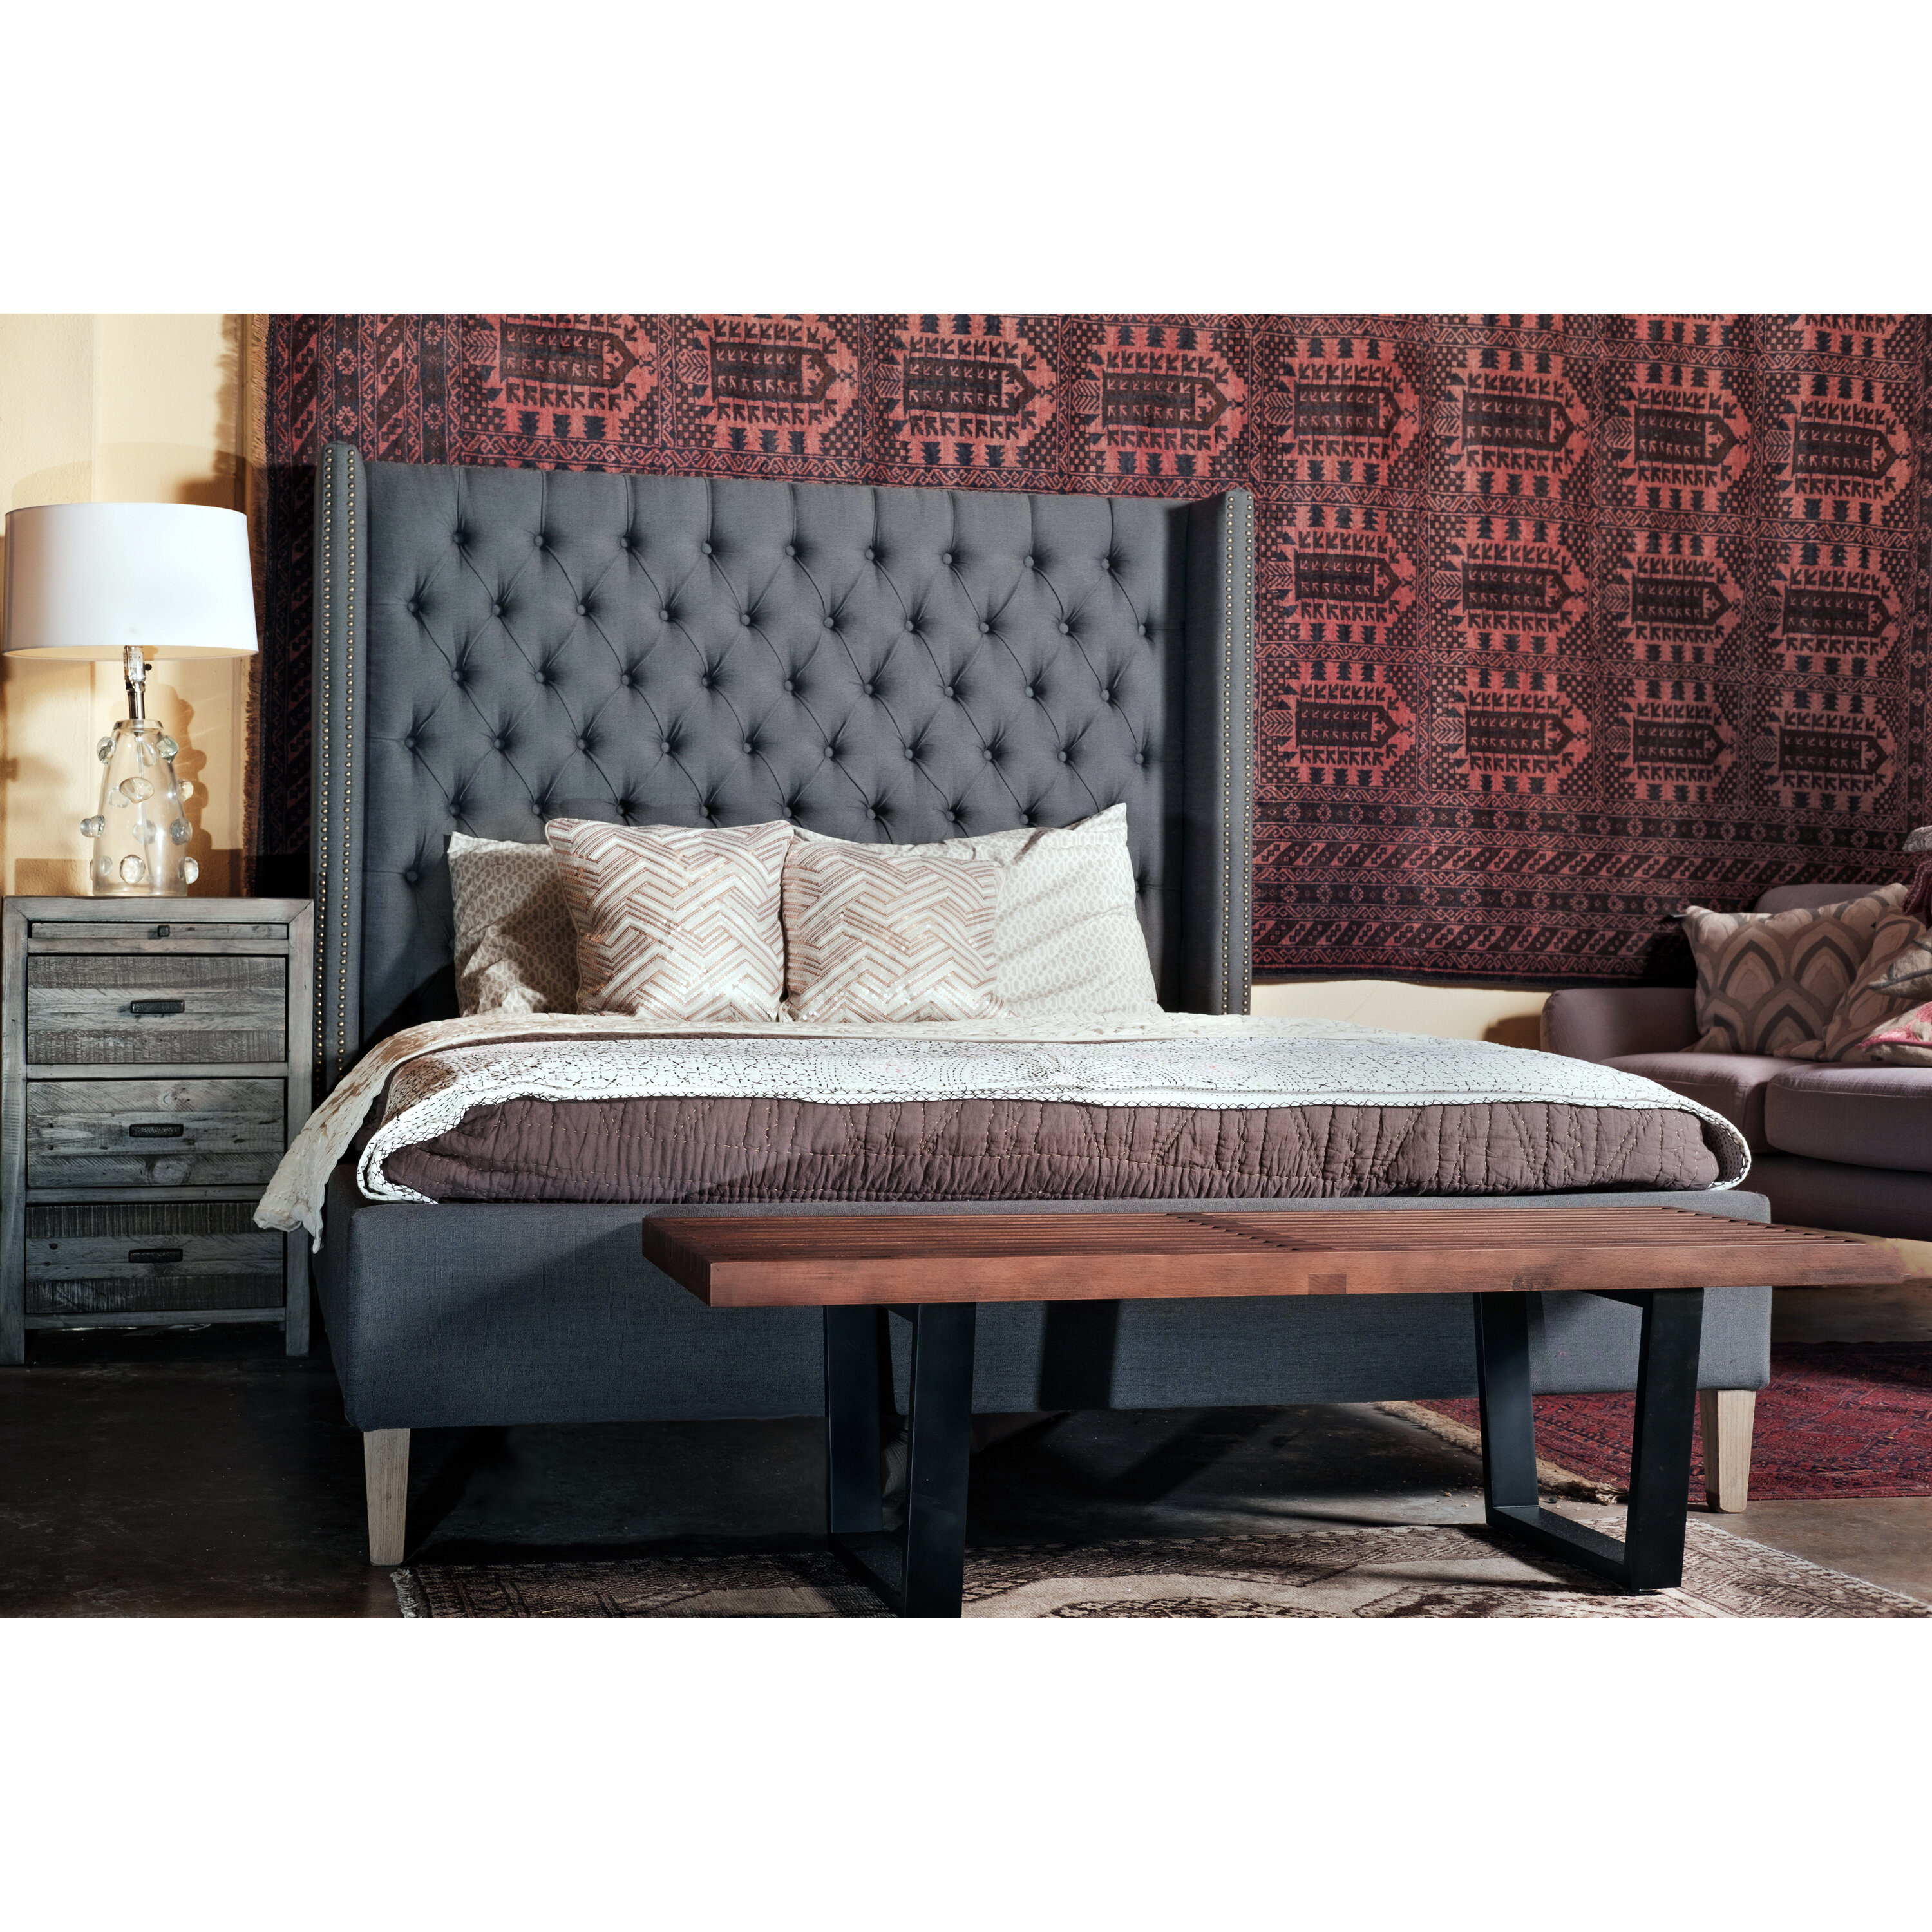 experiencecanyonroad photo x king bed upholstered sleigh bedroom com of